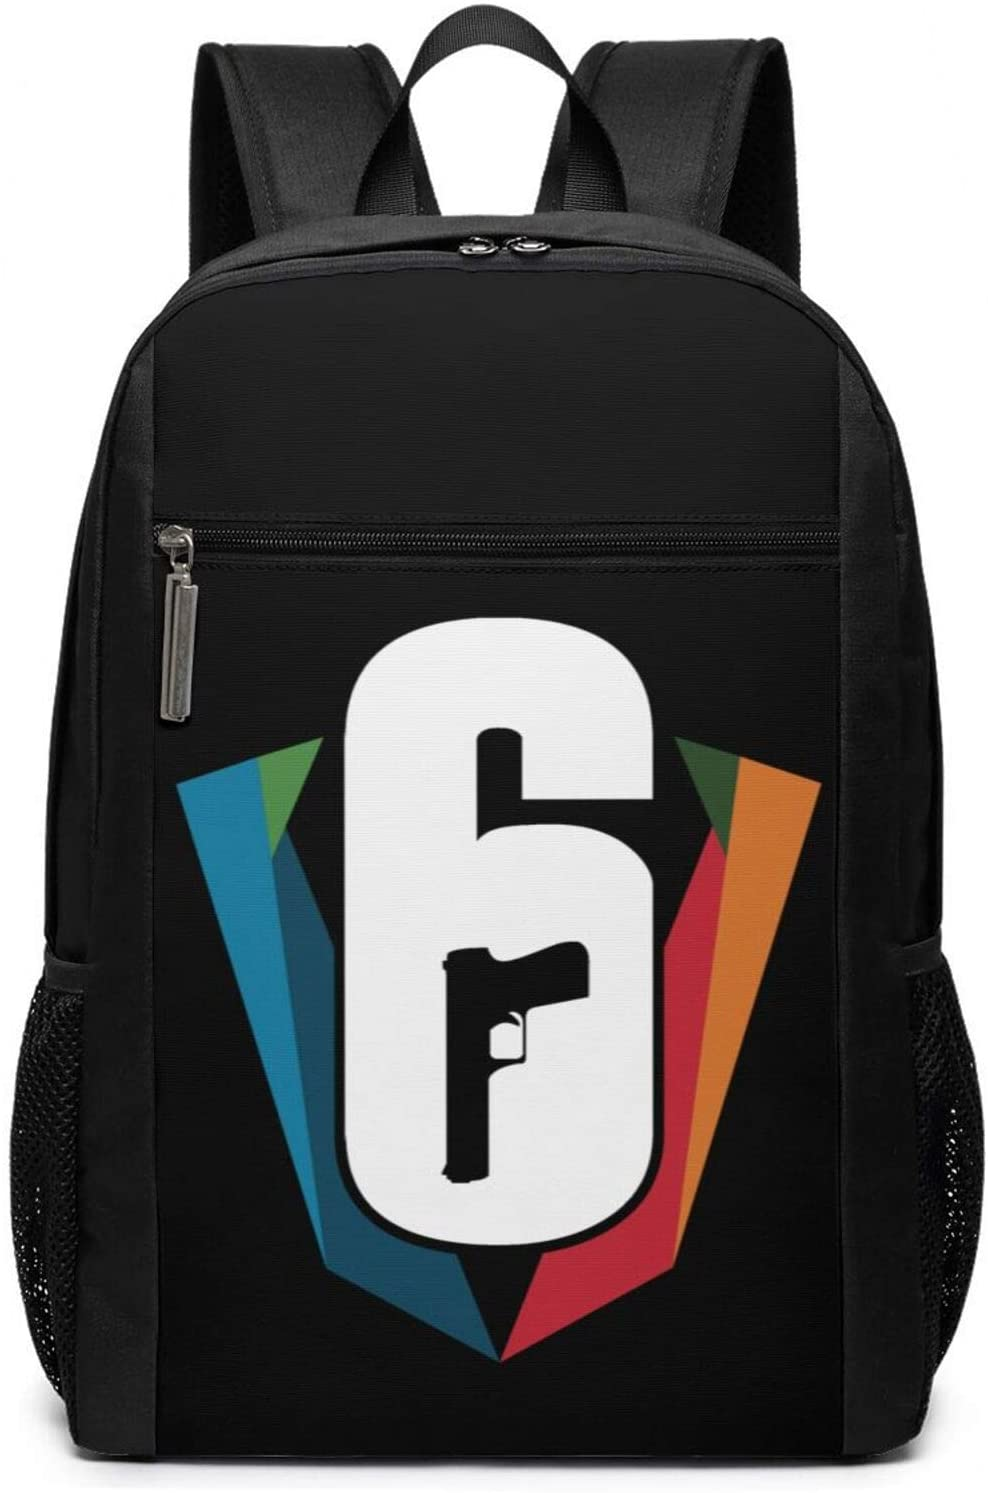 NaohBent Rainbow Six Siege Fashion backpack casual polyester 17 inch bags for man women One Size